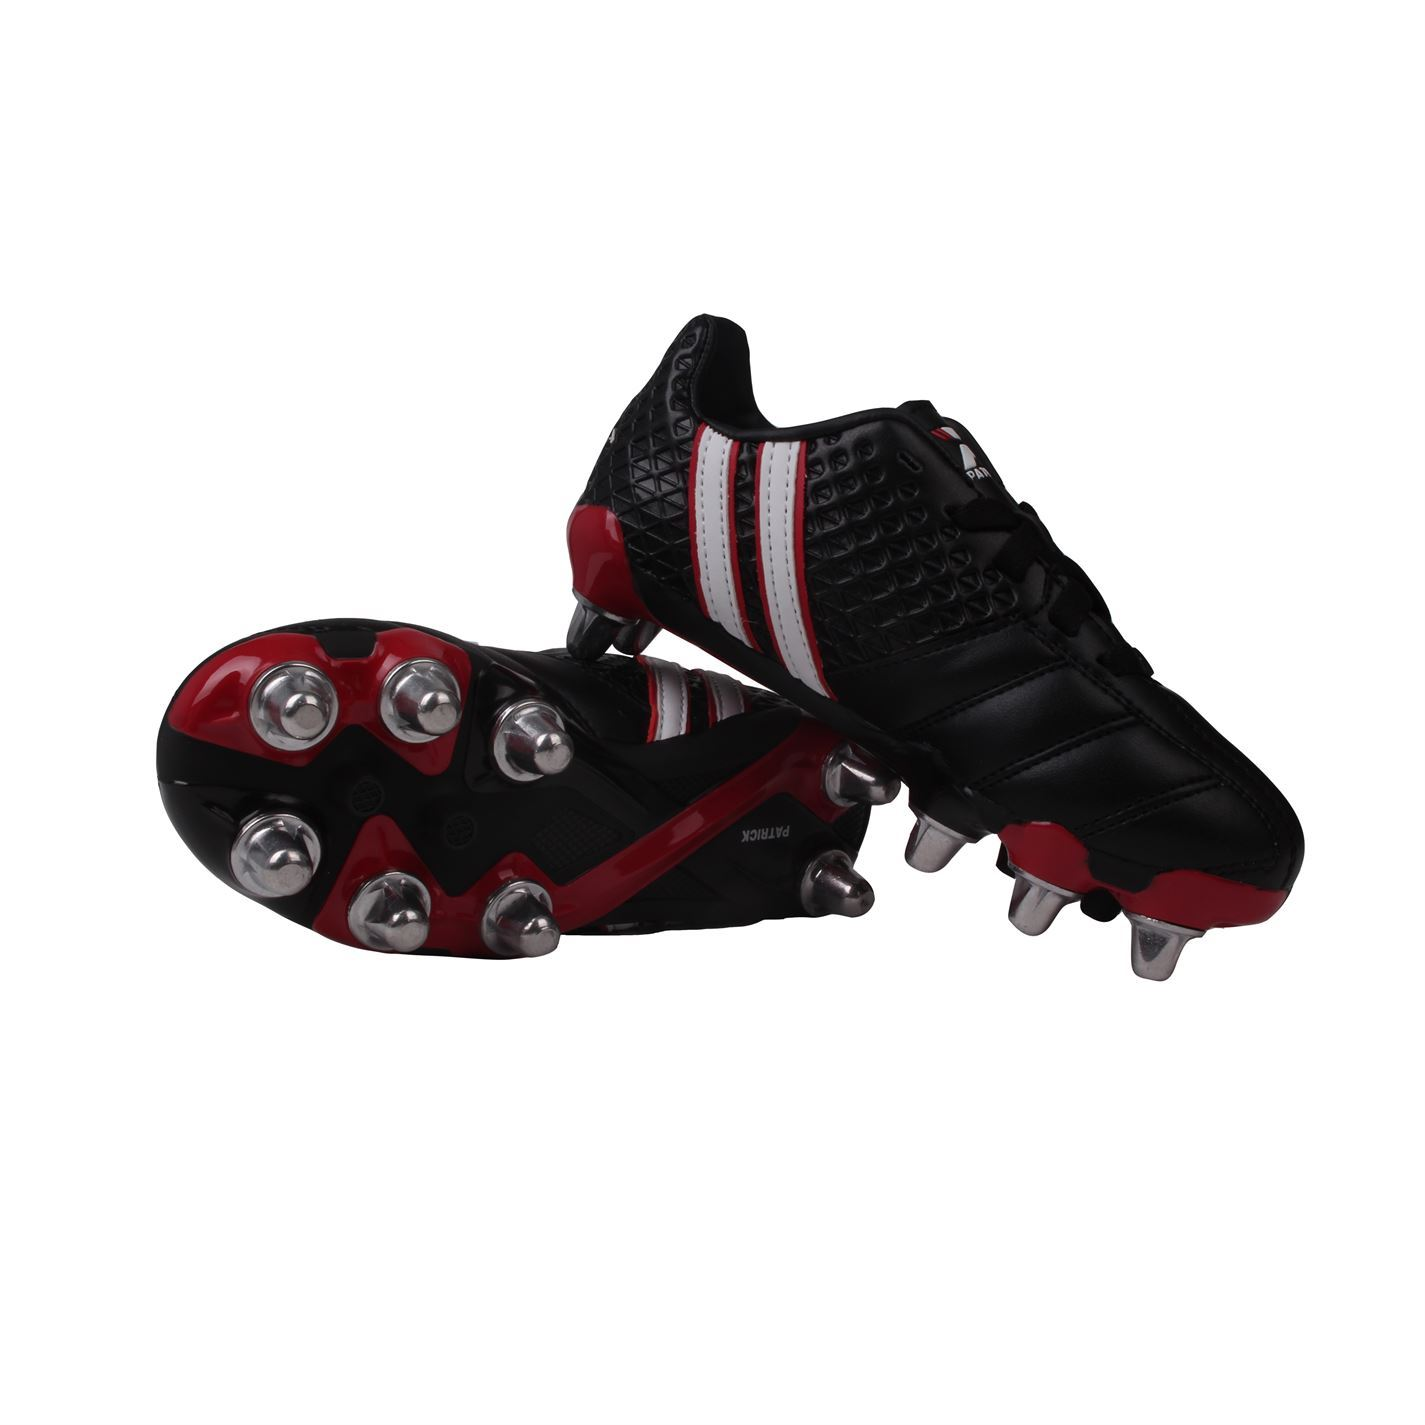 3344dd8ad Details about Patrick Kids Power X Childrens Rugby Boots Boys Sports New  Youth Shoes Junior